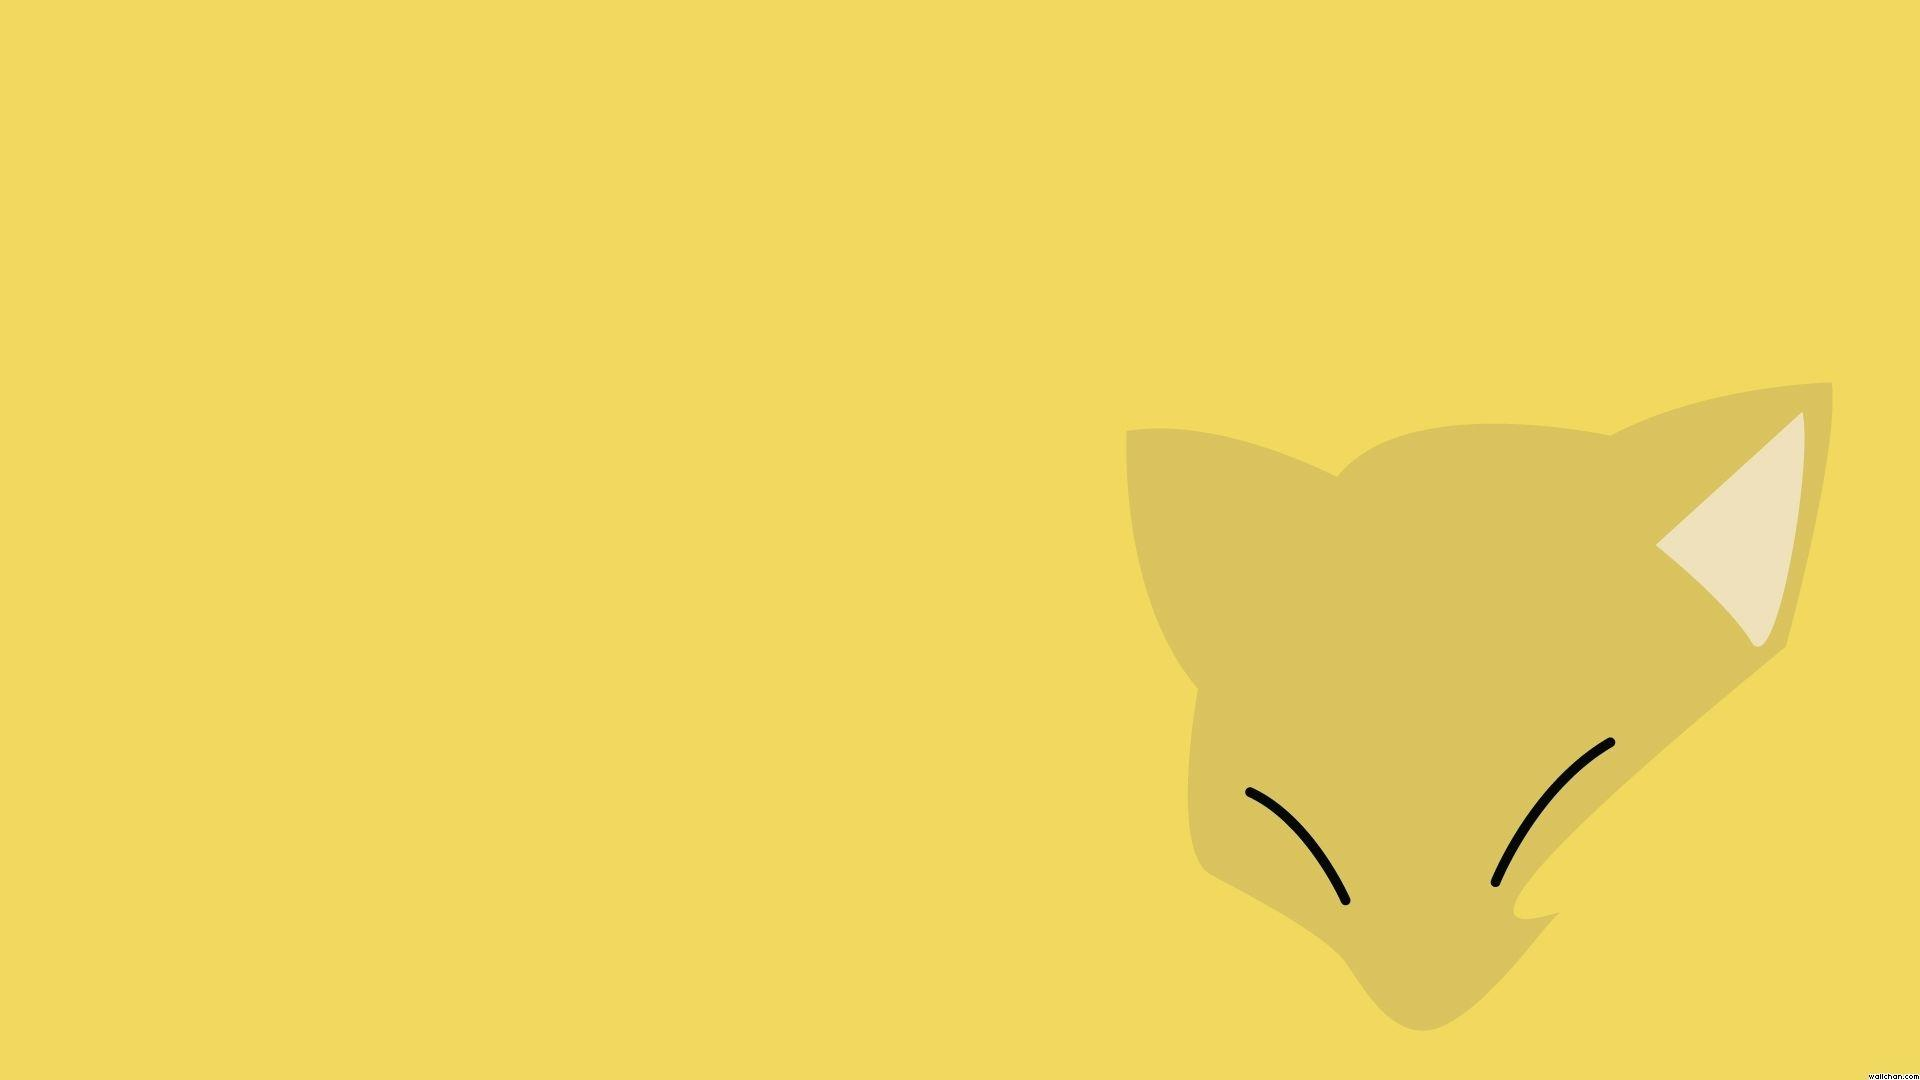 pokemon abra 1920x1080 wallpapers High Quality Wallpapers,High